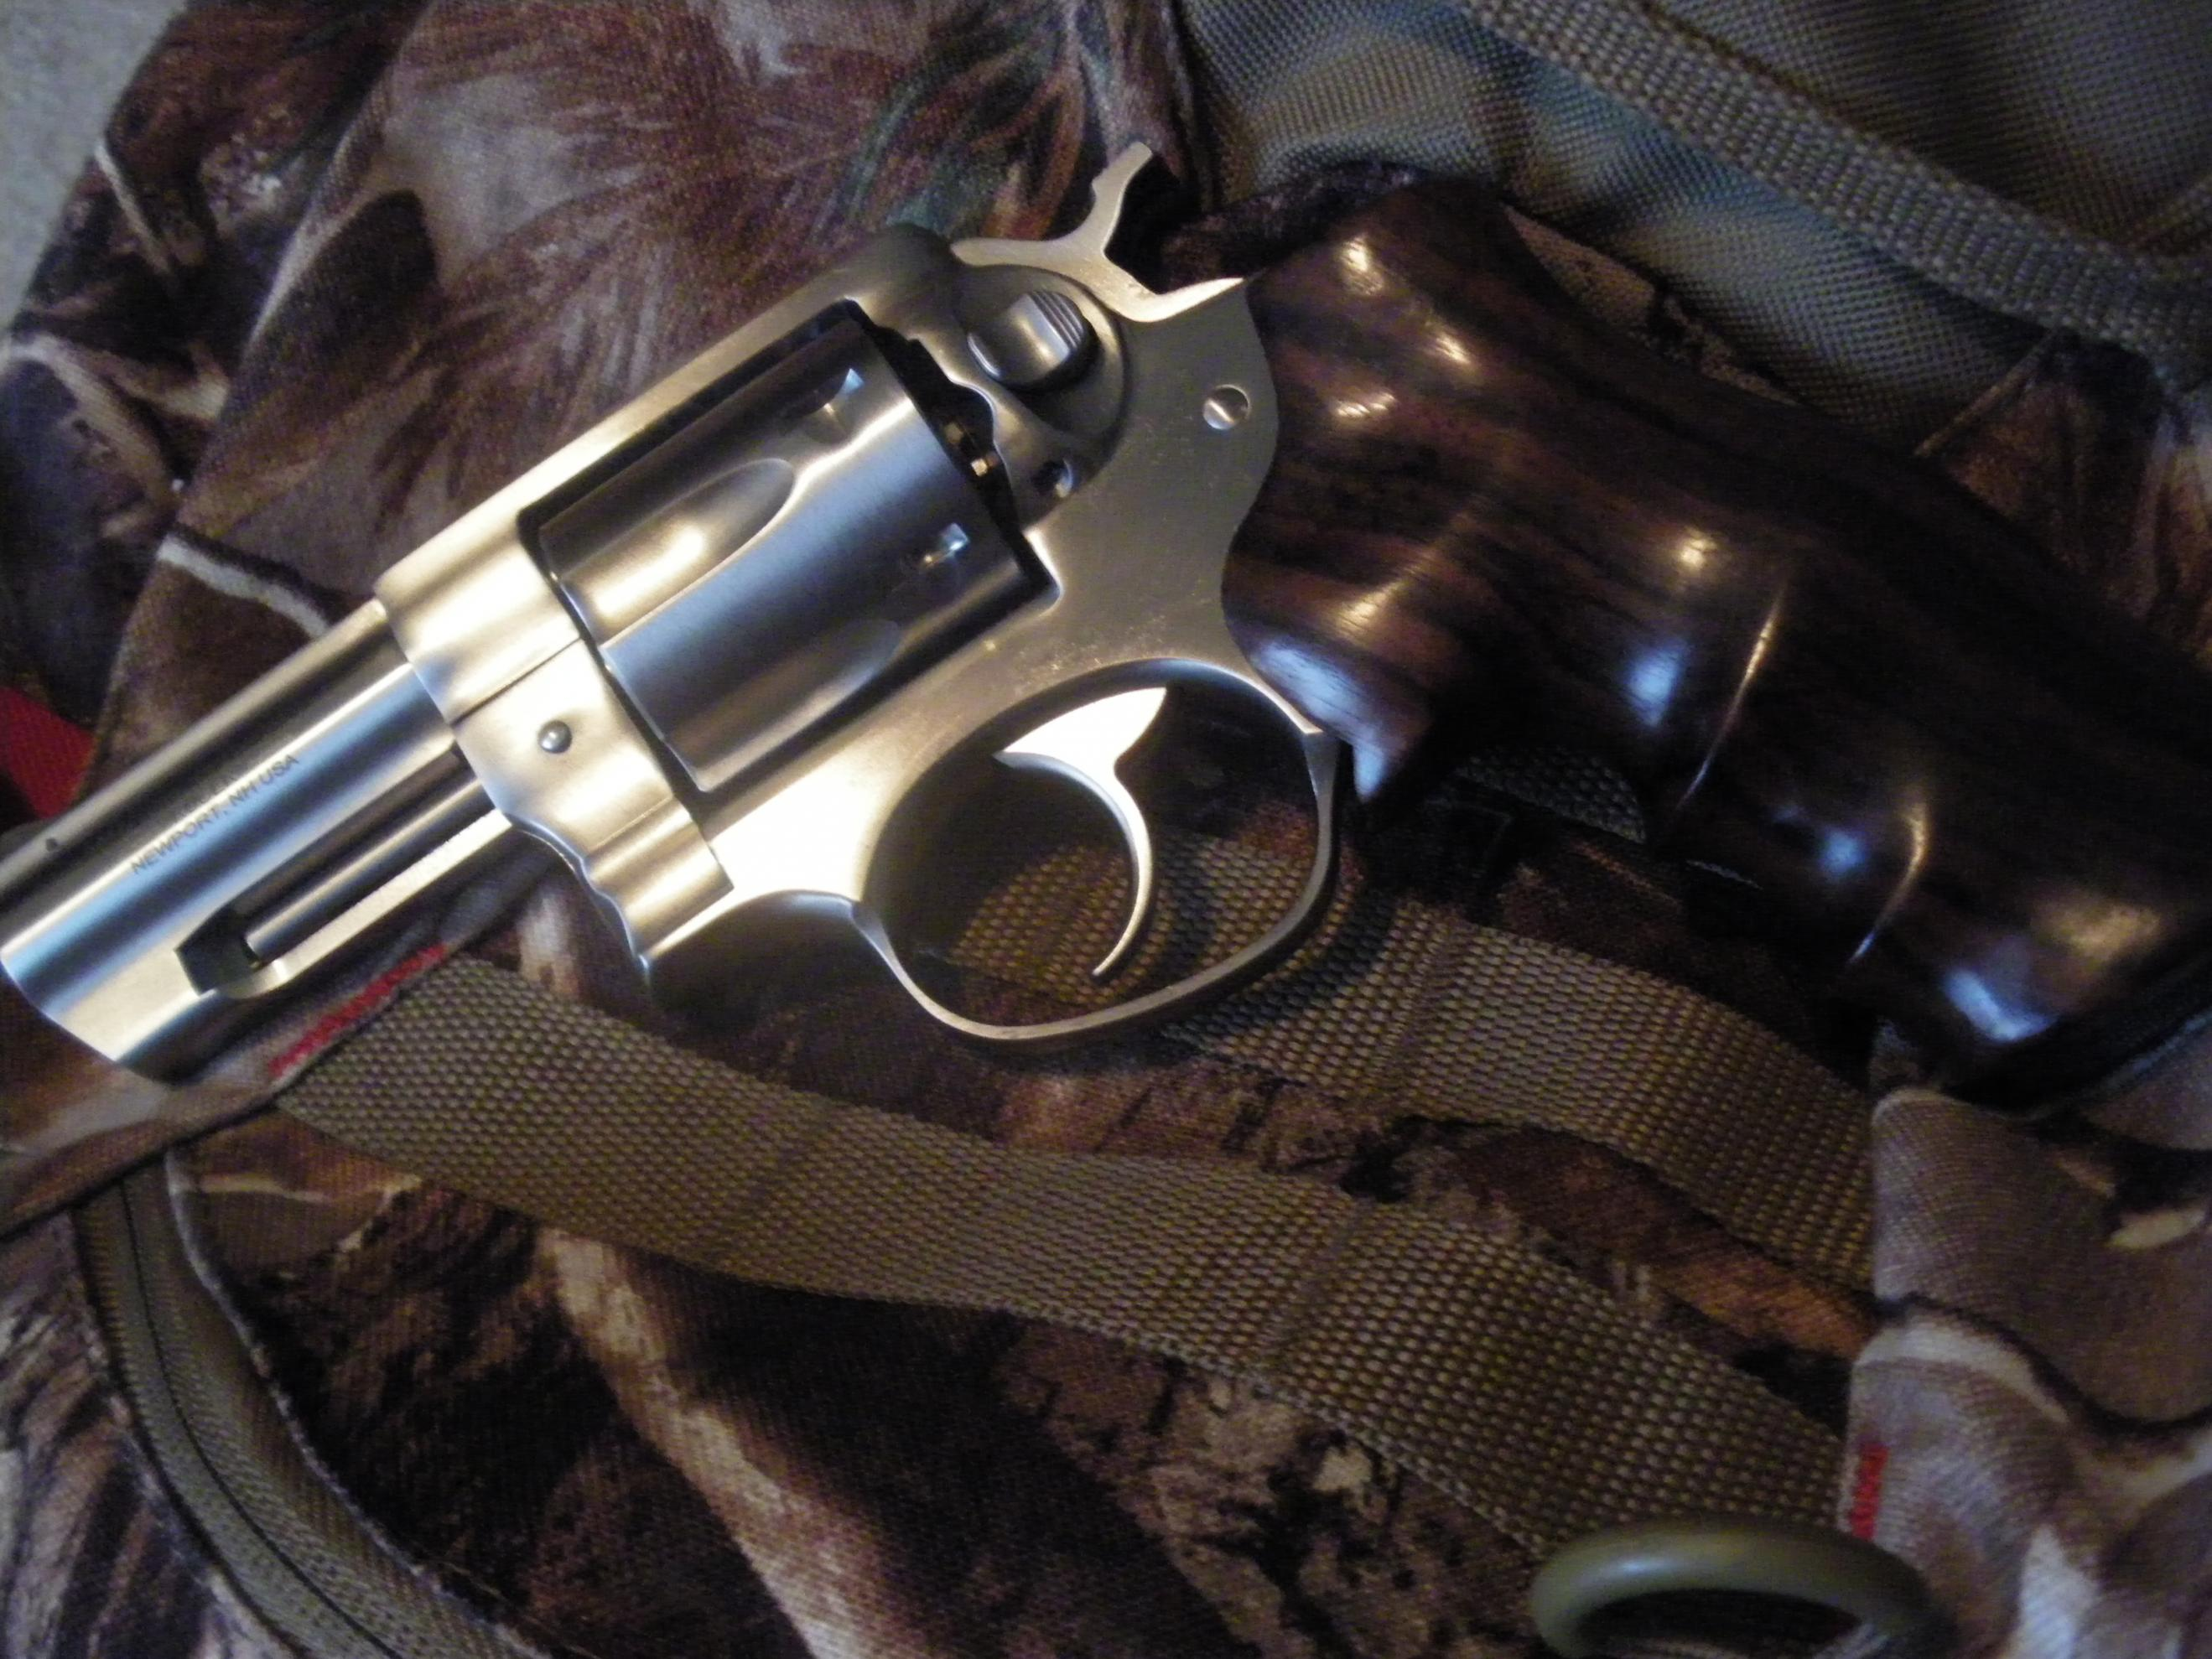 A New Sixgun and some old Don Hume leather....-2012-08-17-17.36.03.jpg